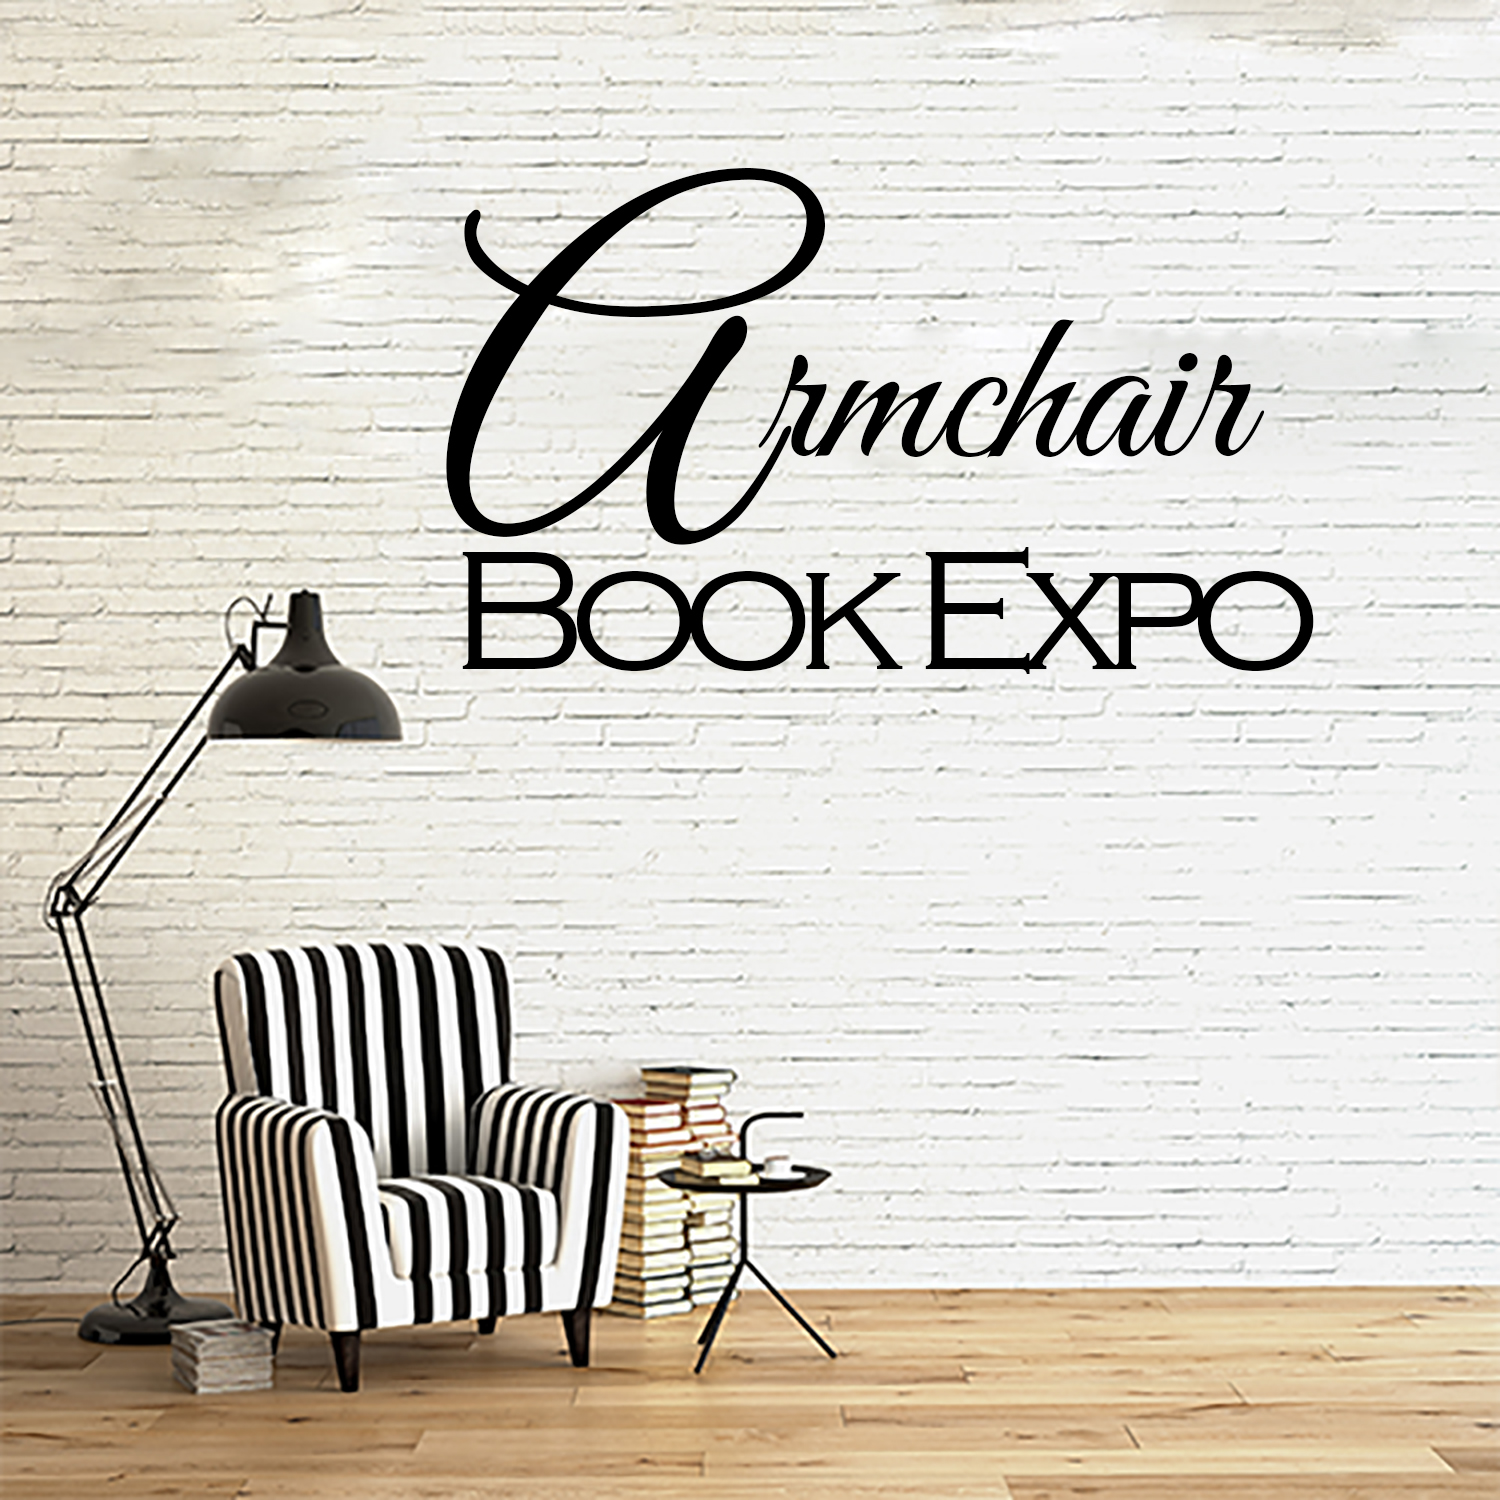 Armchair Book Expo 2017